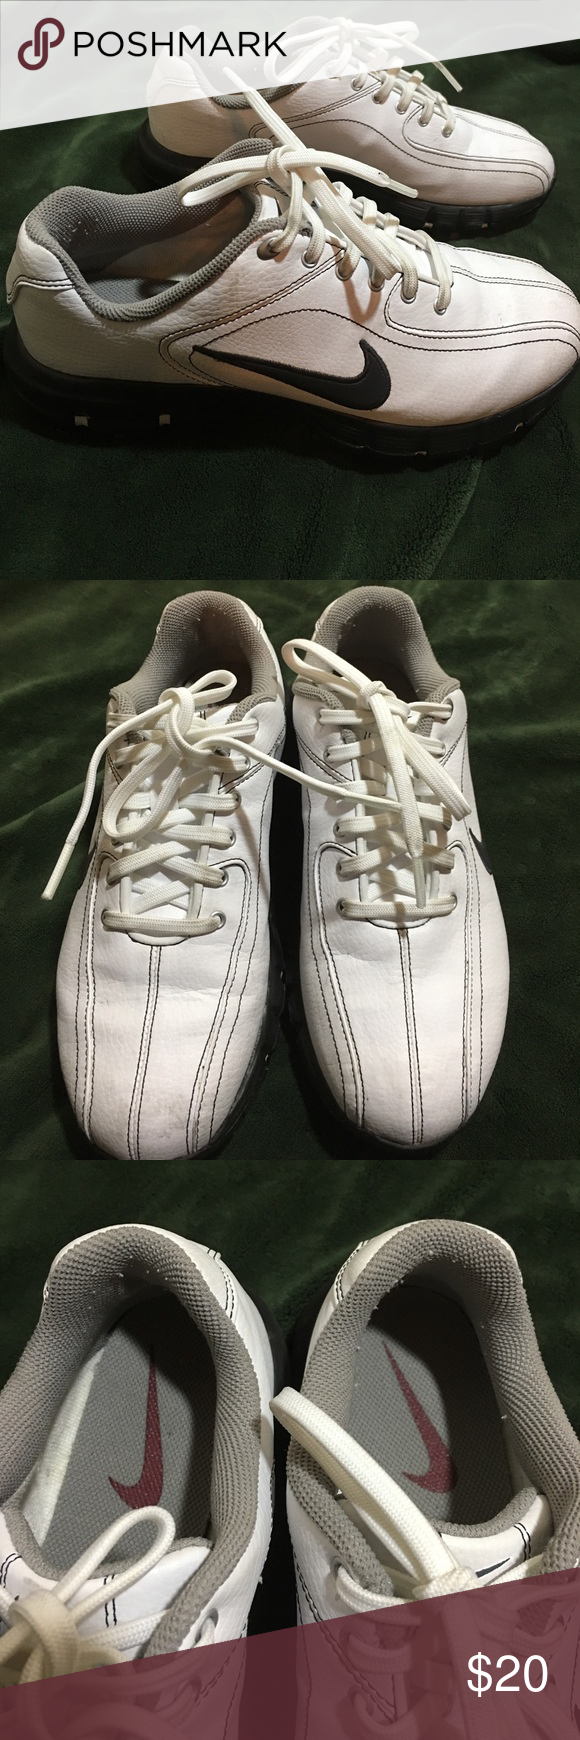 new concept 54ede 40126 NIKE Revive Kids Leather Golf Shoe Great condition! Only worn a few times.  Some piling on inside. Normal wear with mild scuffing and marks on outside.